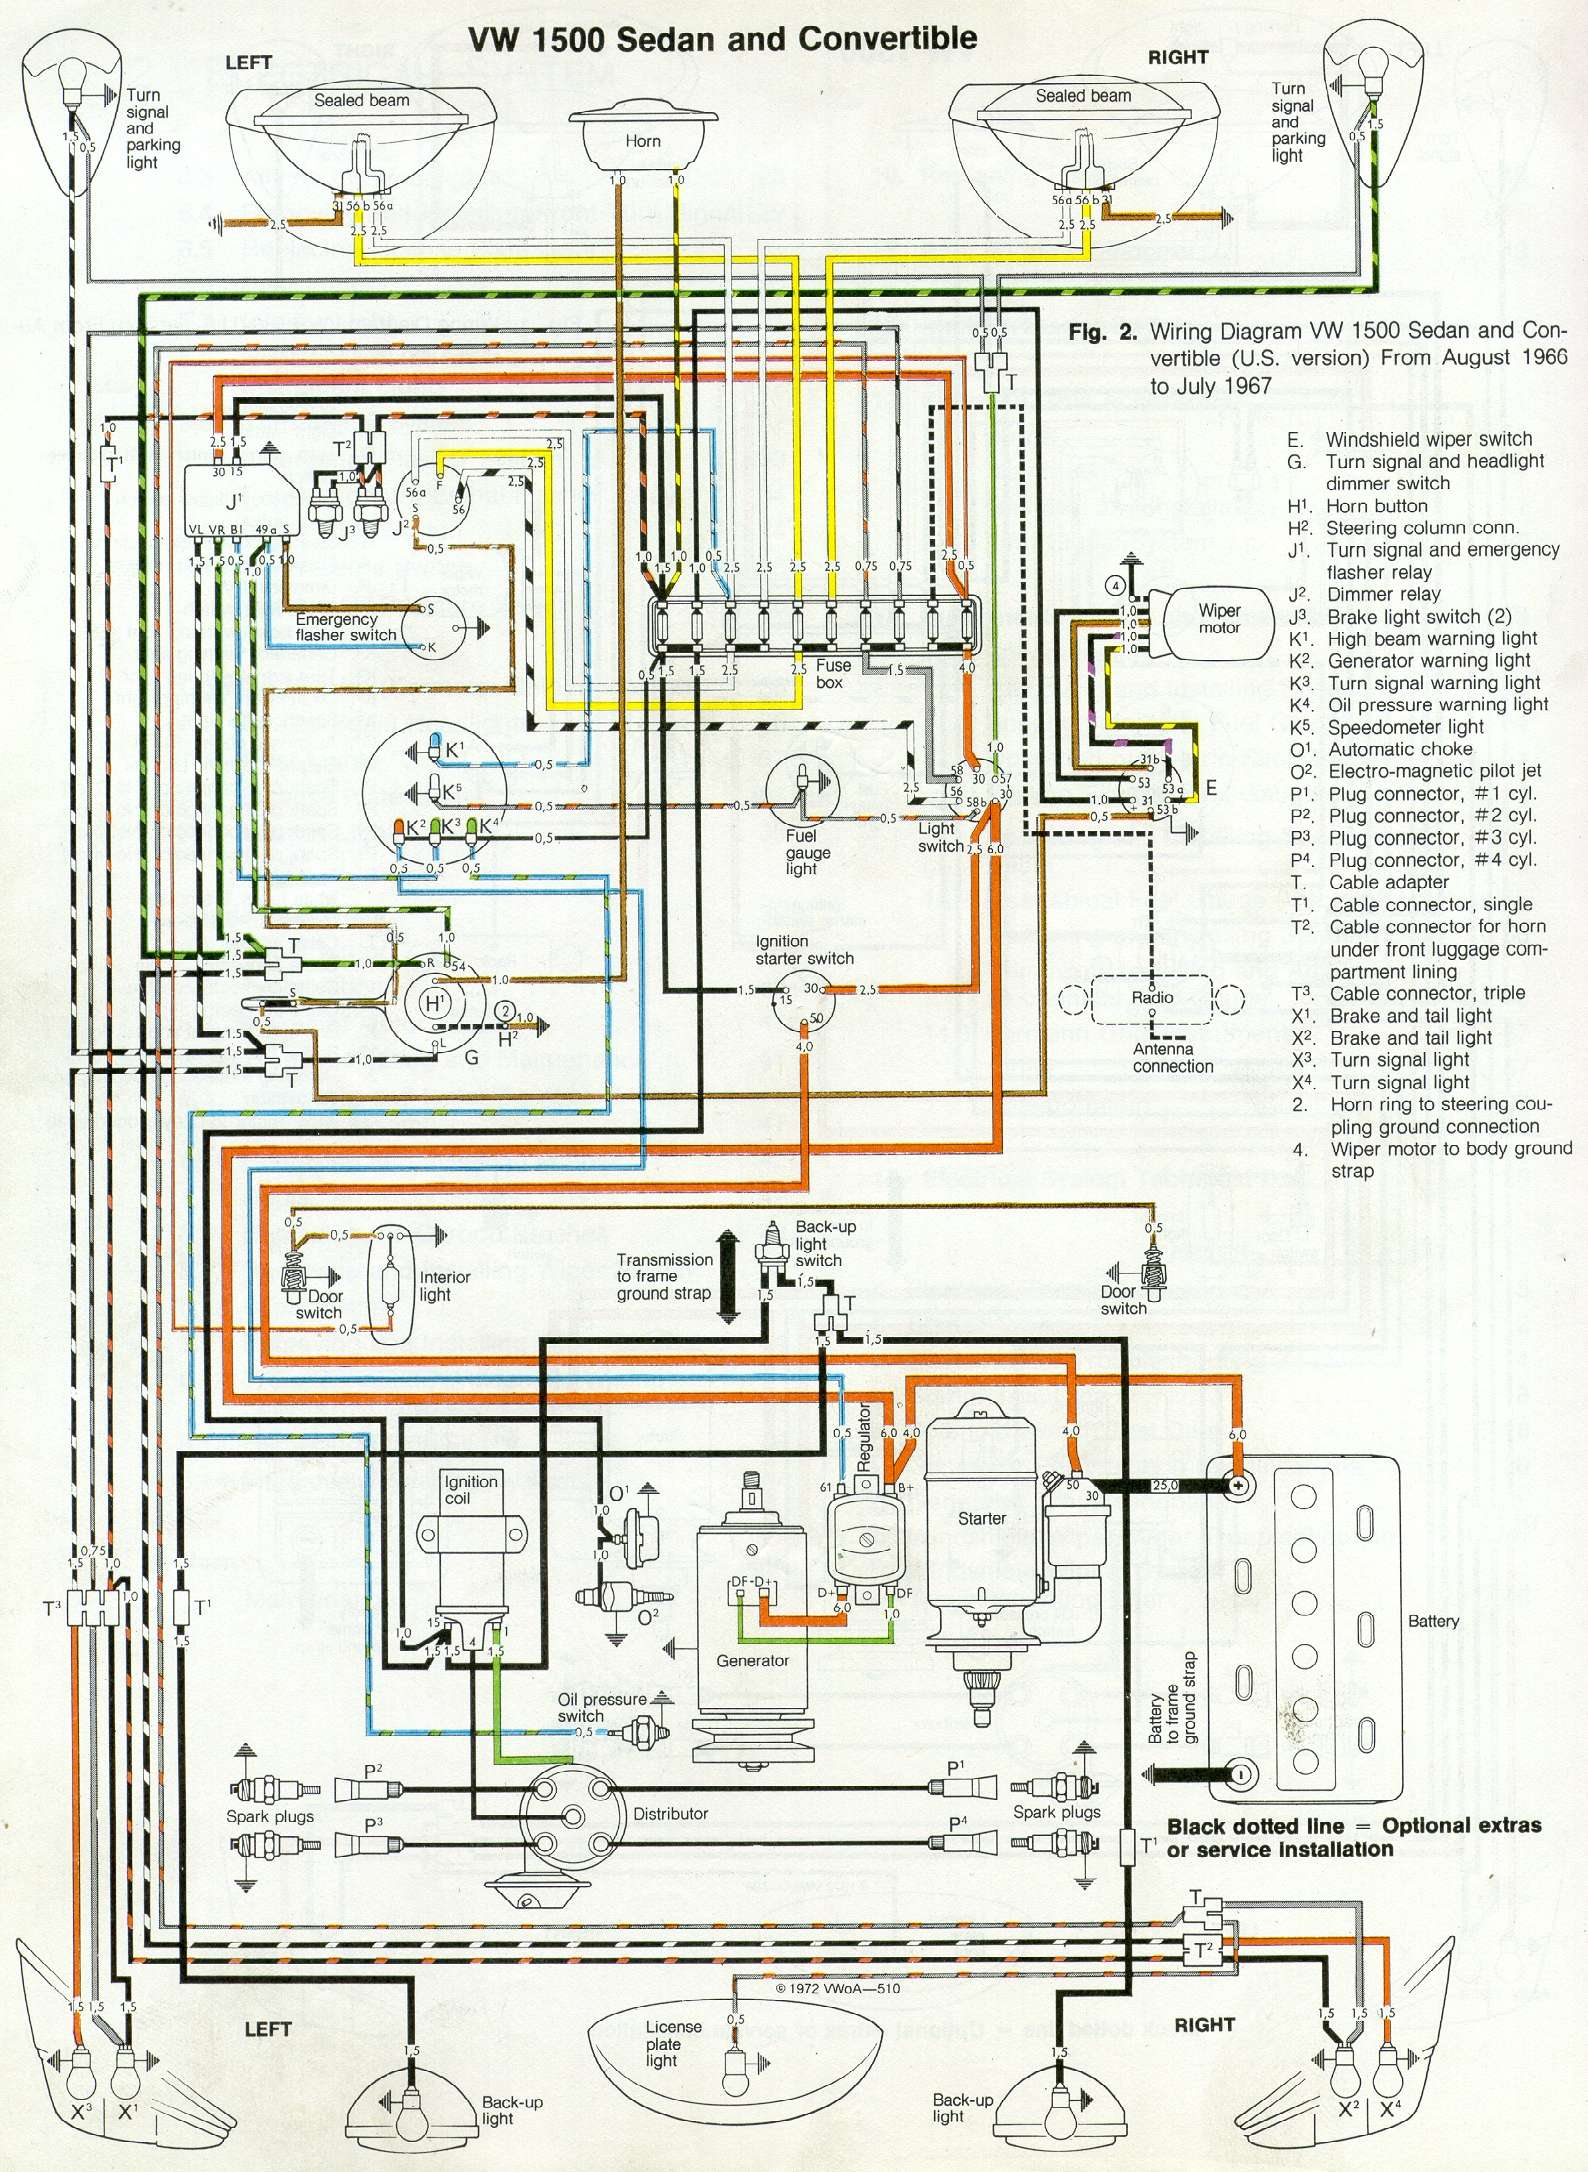 vw bus wiring diagram pdf vw wiring diagrams bug 66%2b67 vw bus wiring diagram pdf